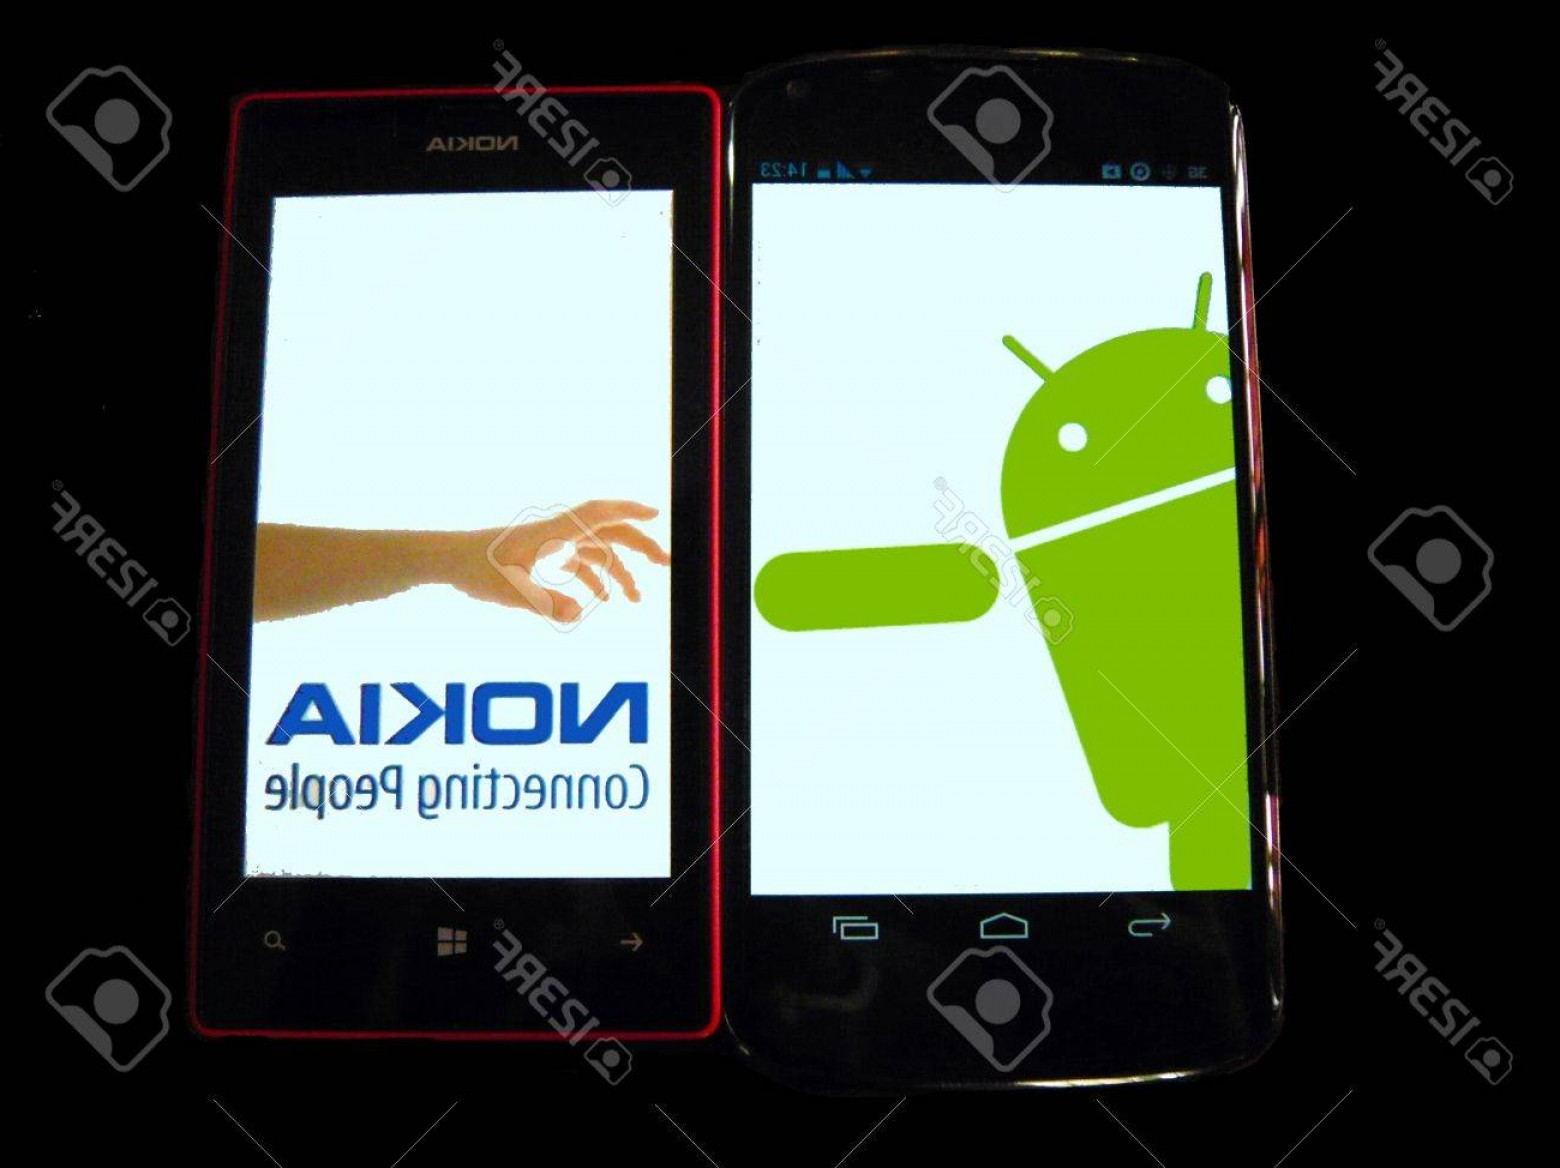 Search Logo Lumia Vector: Photonokia S Hand Logo Parody Nokia Reach Out To Android Isolated Picture Of Google Nexus And Nokia Lum